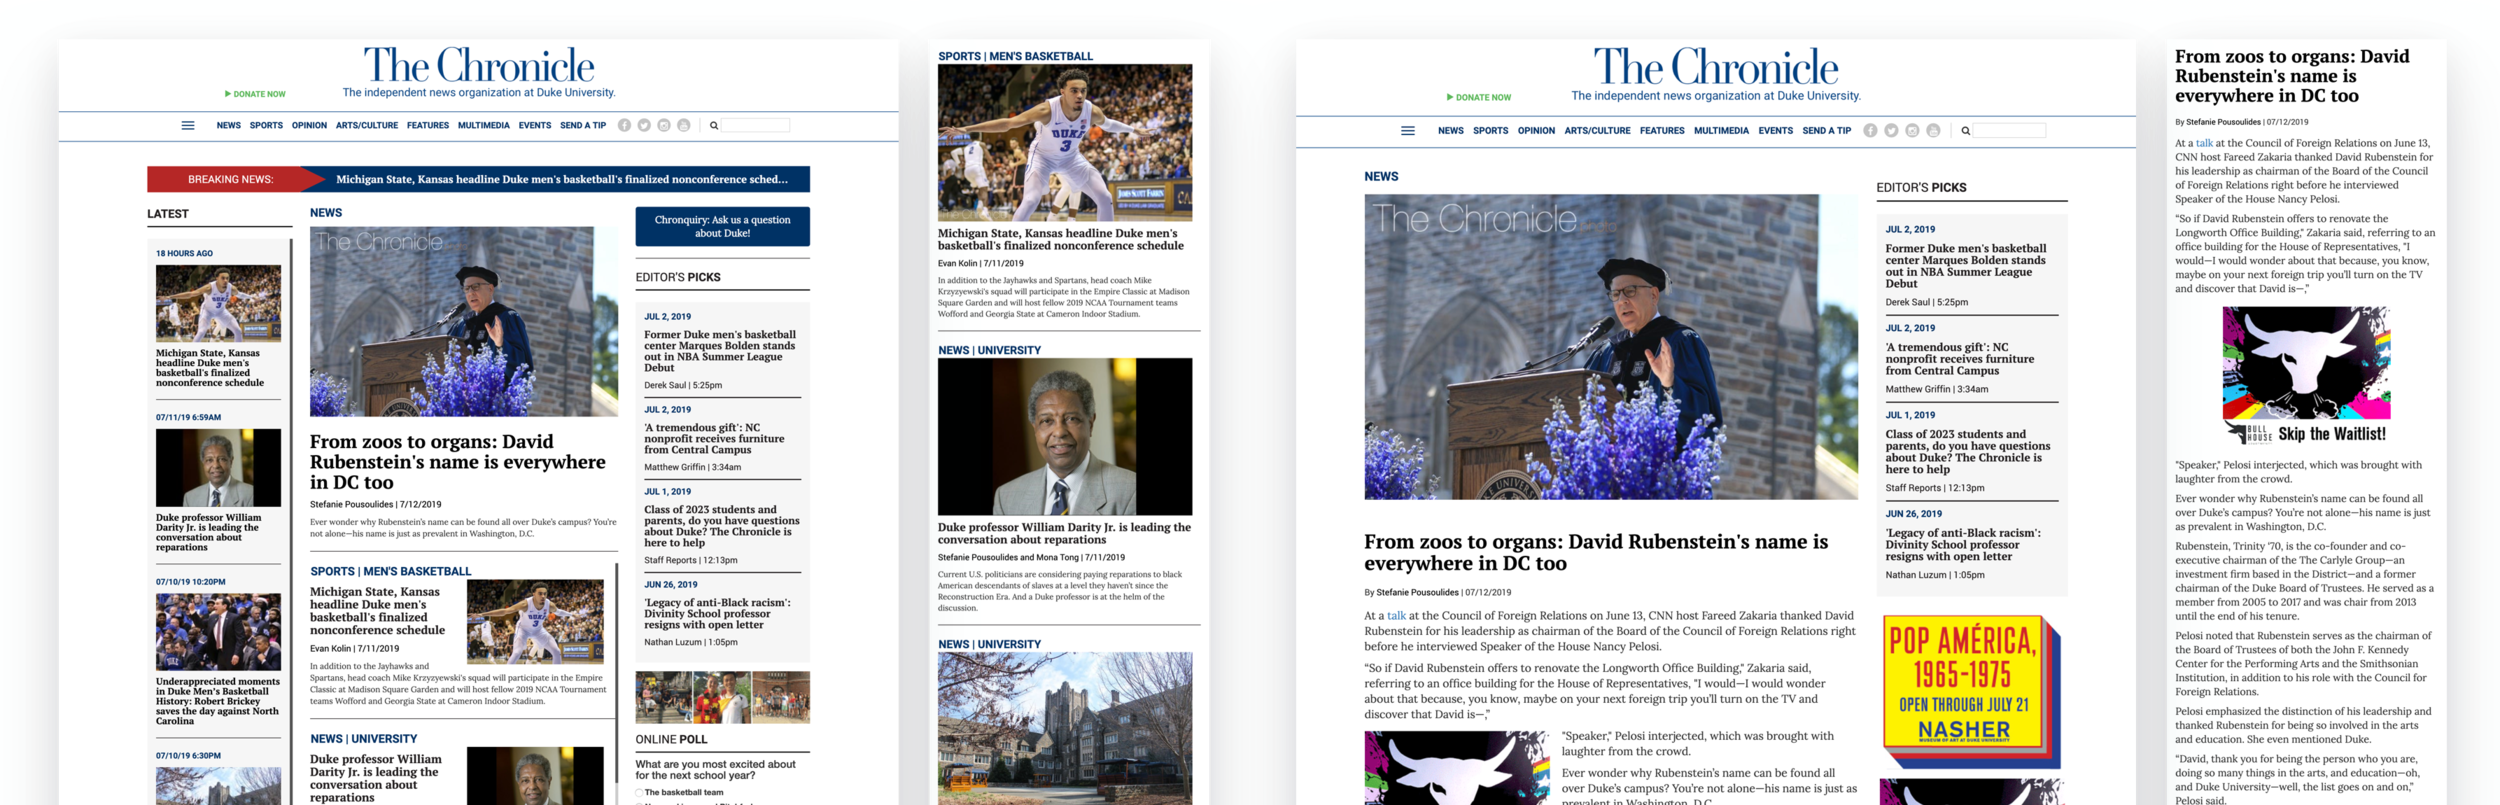 Desktop and mobile screenshots of the original homepage (left) and article page (right)